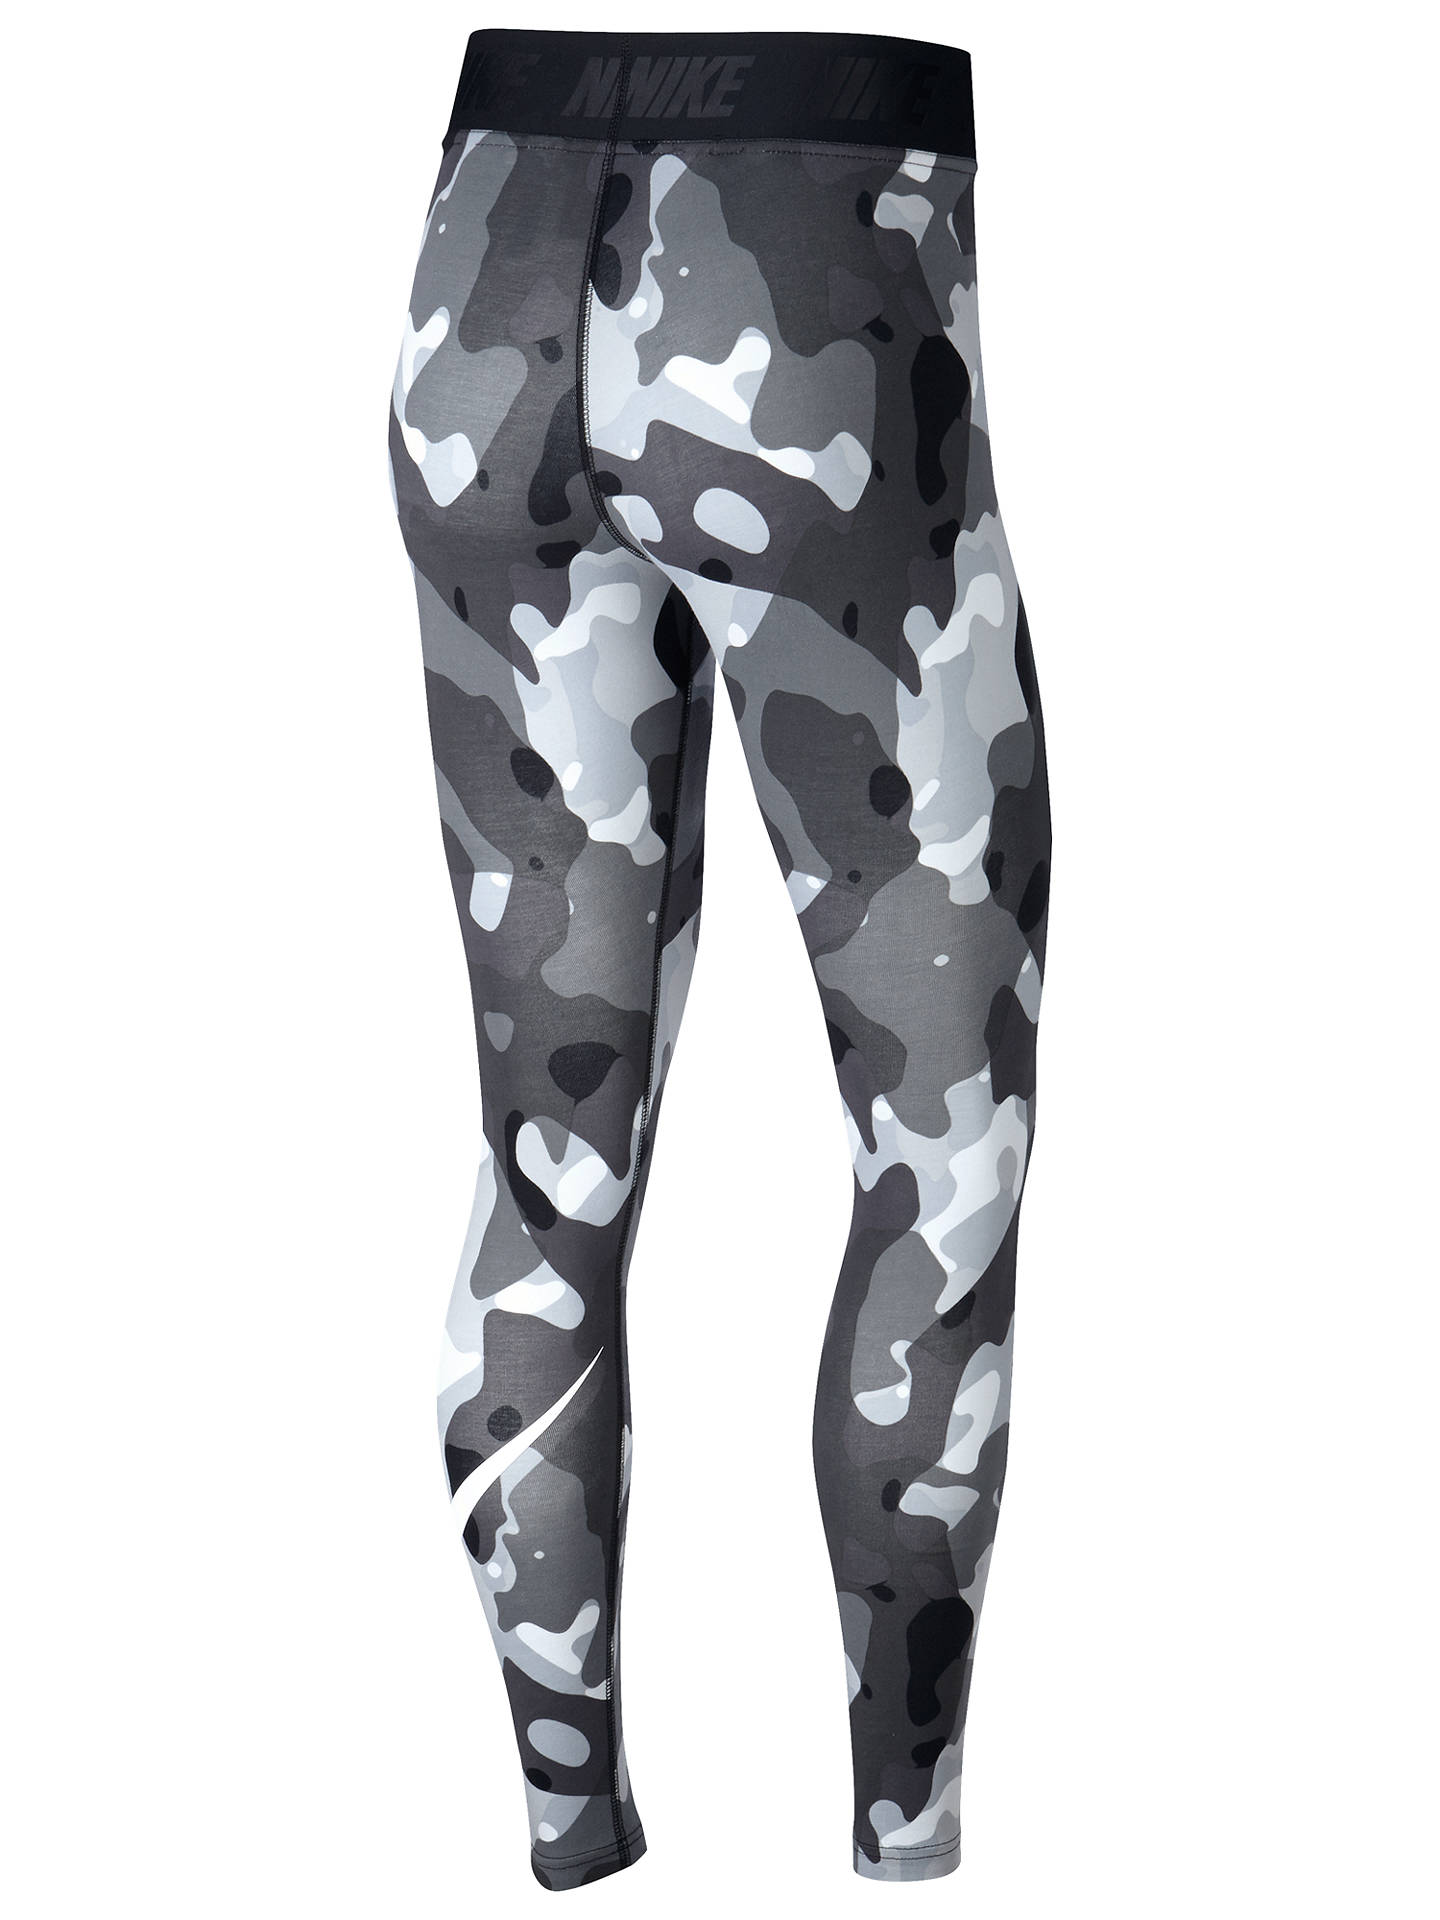 e034298b42bc2 ... Buy Nike Sportswear Swoosh Camo Training Tights, Black/White, XS Online  at johnlewis